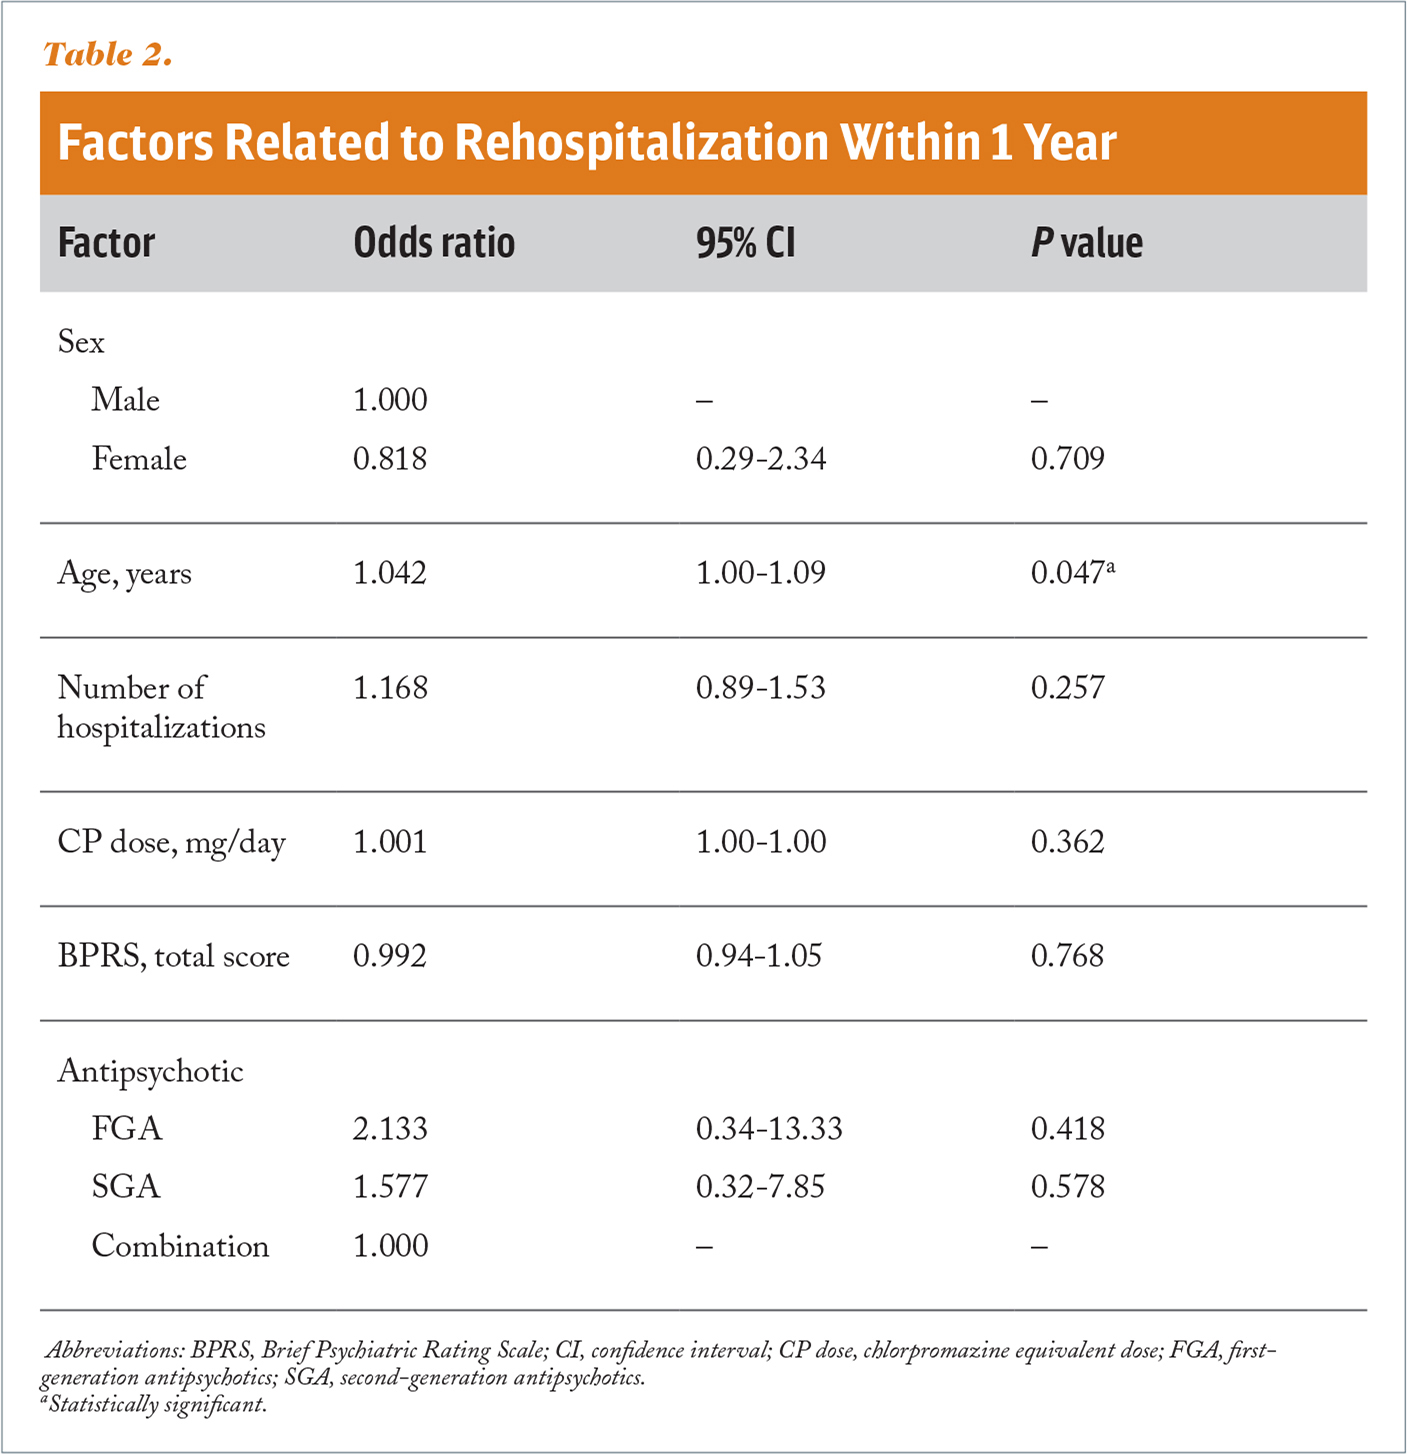 Factors Related to Rehospitalization Within 1 Year